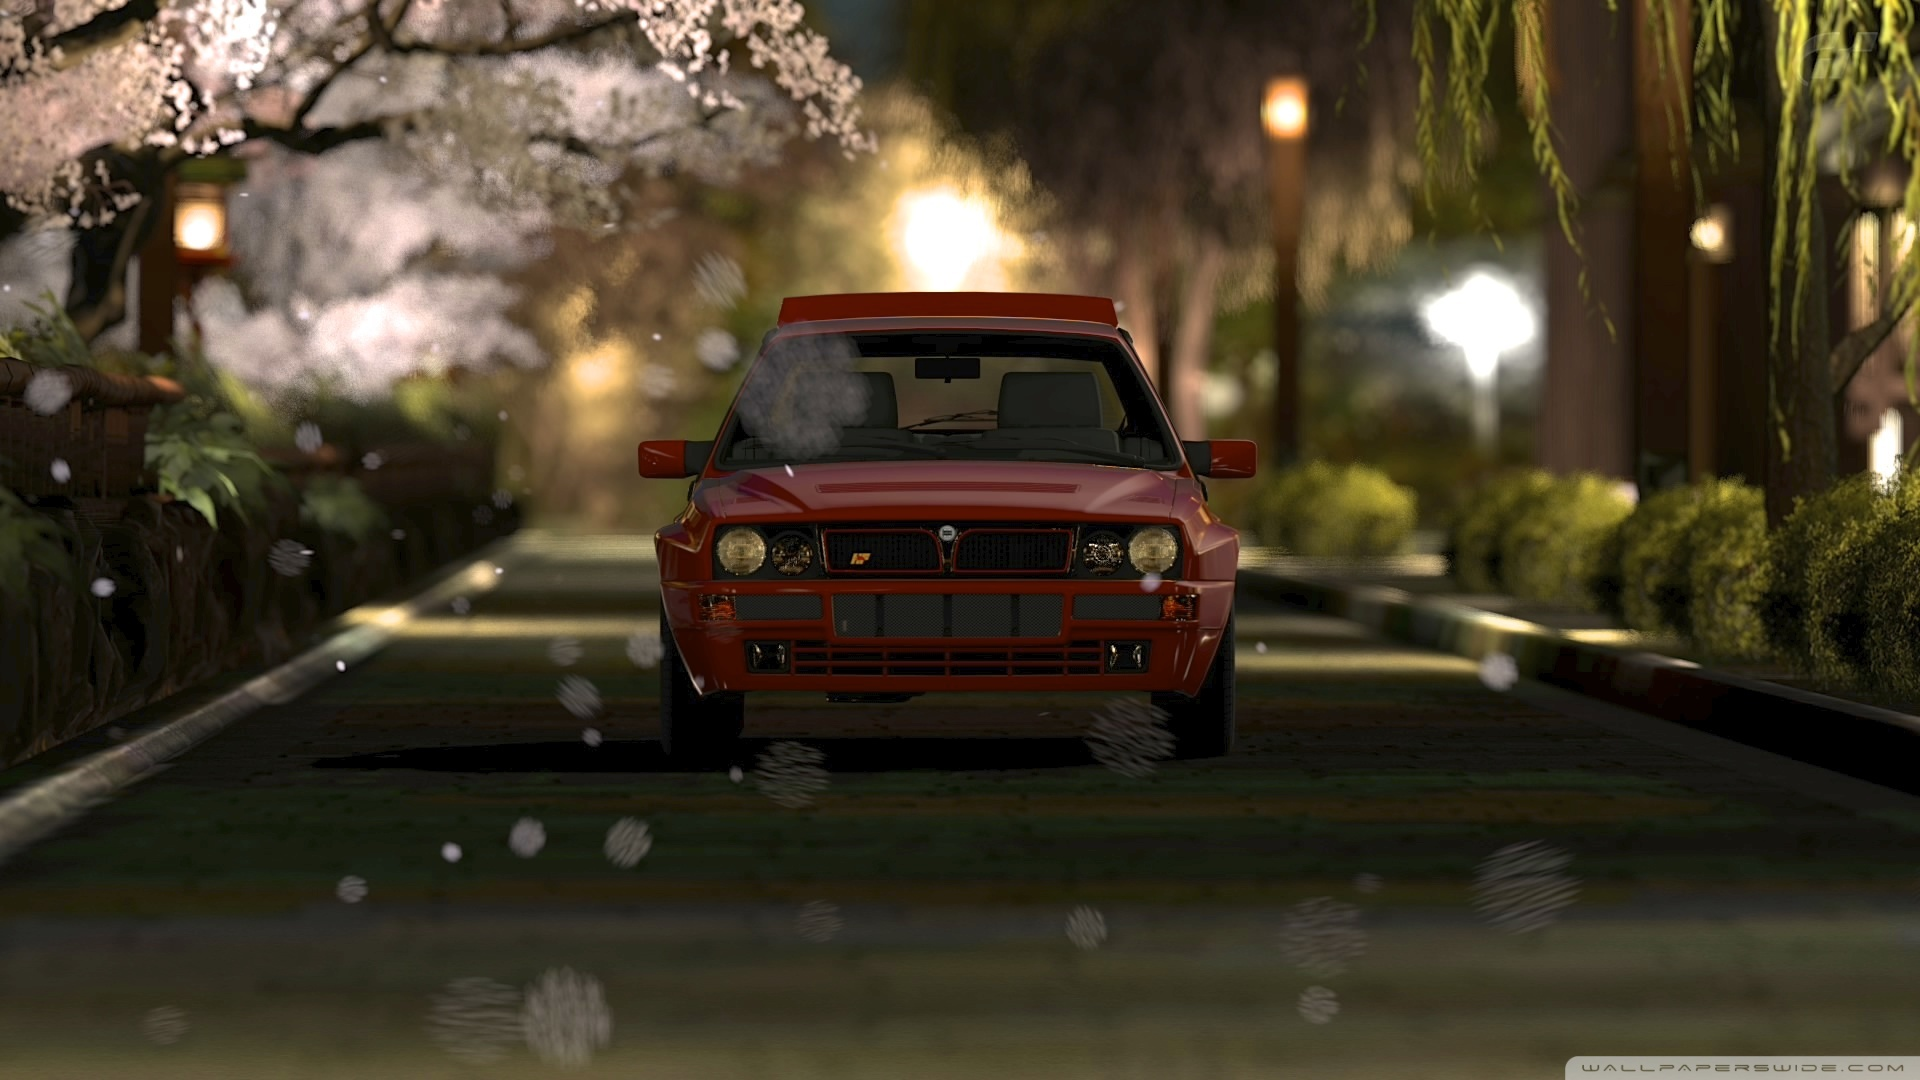 Rally Car Hd Wallpaper Gran Turismo 5 Lancia Delta Hf Integrale 4k Hd Desktop